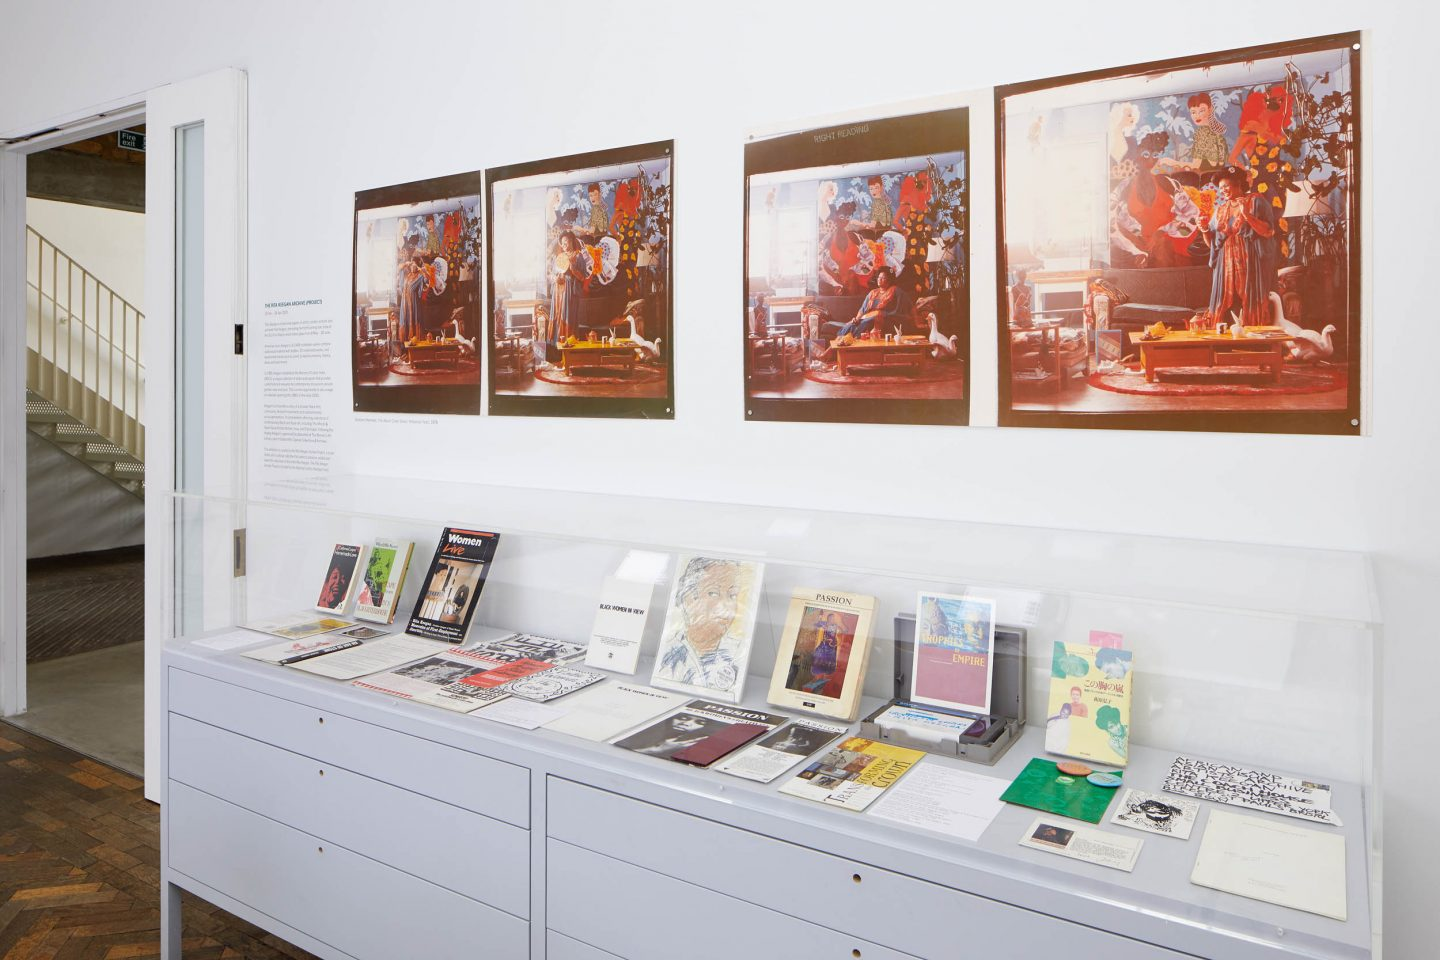 Rita Keegan Archive (Project), installation view at the South London Gallery, 2020. Photo: Andy Stagg